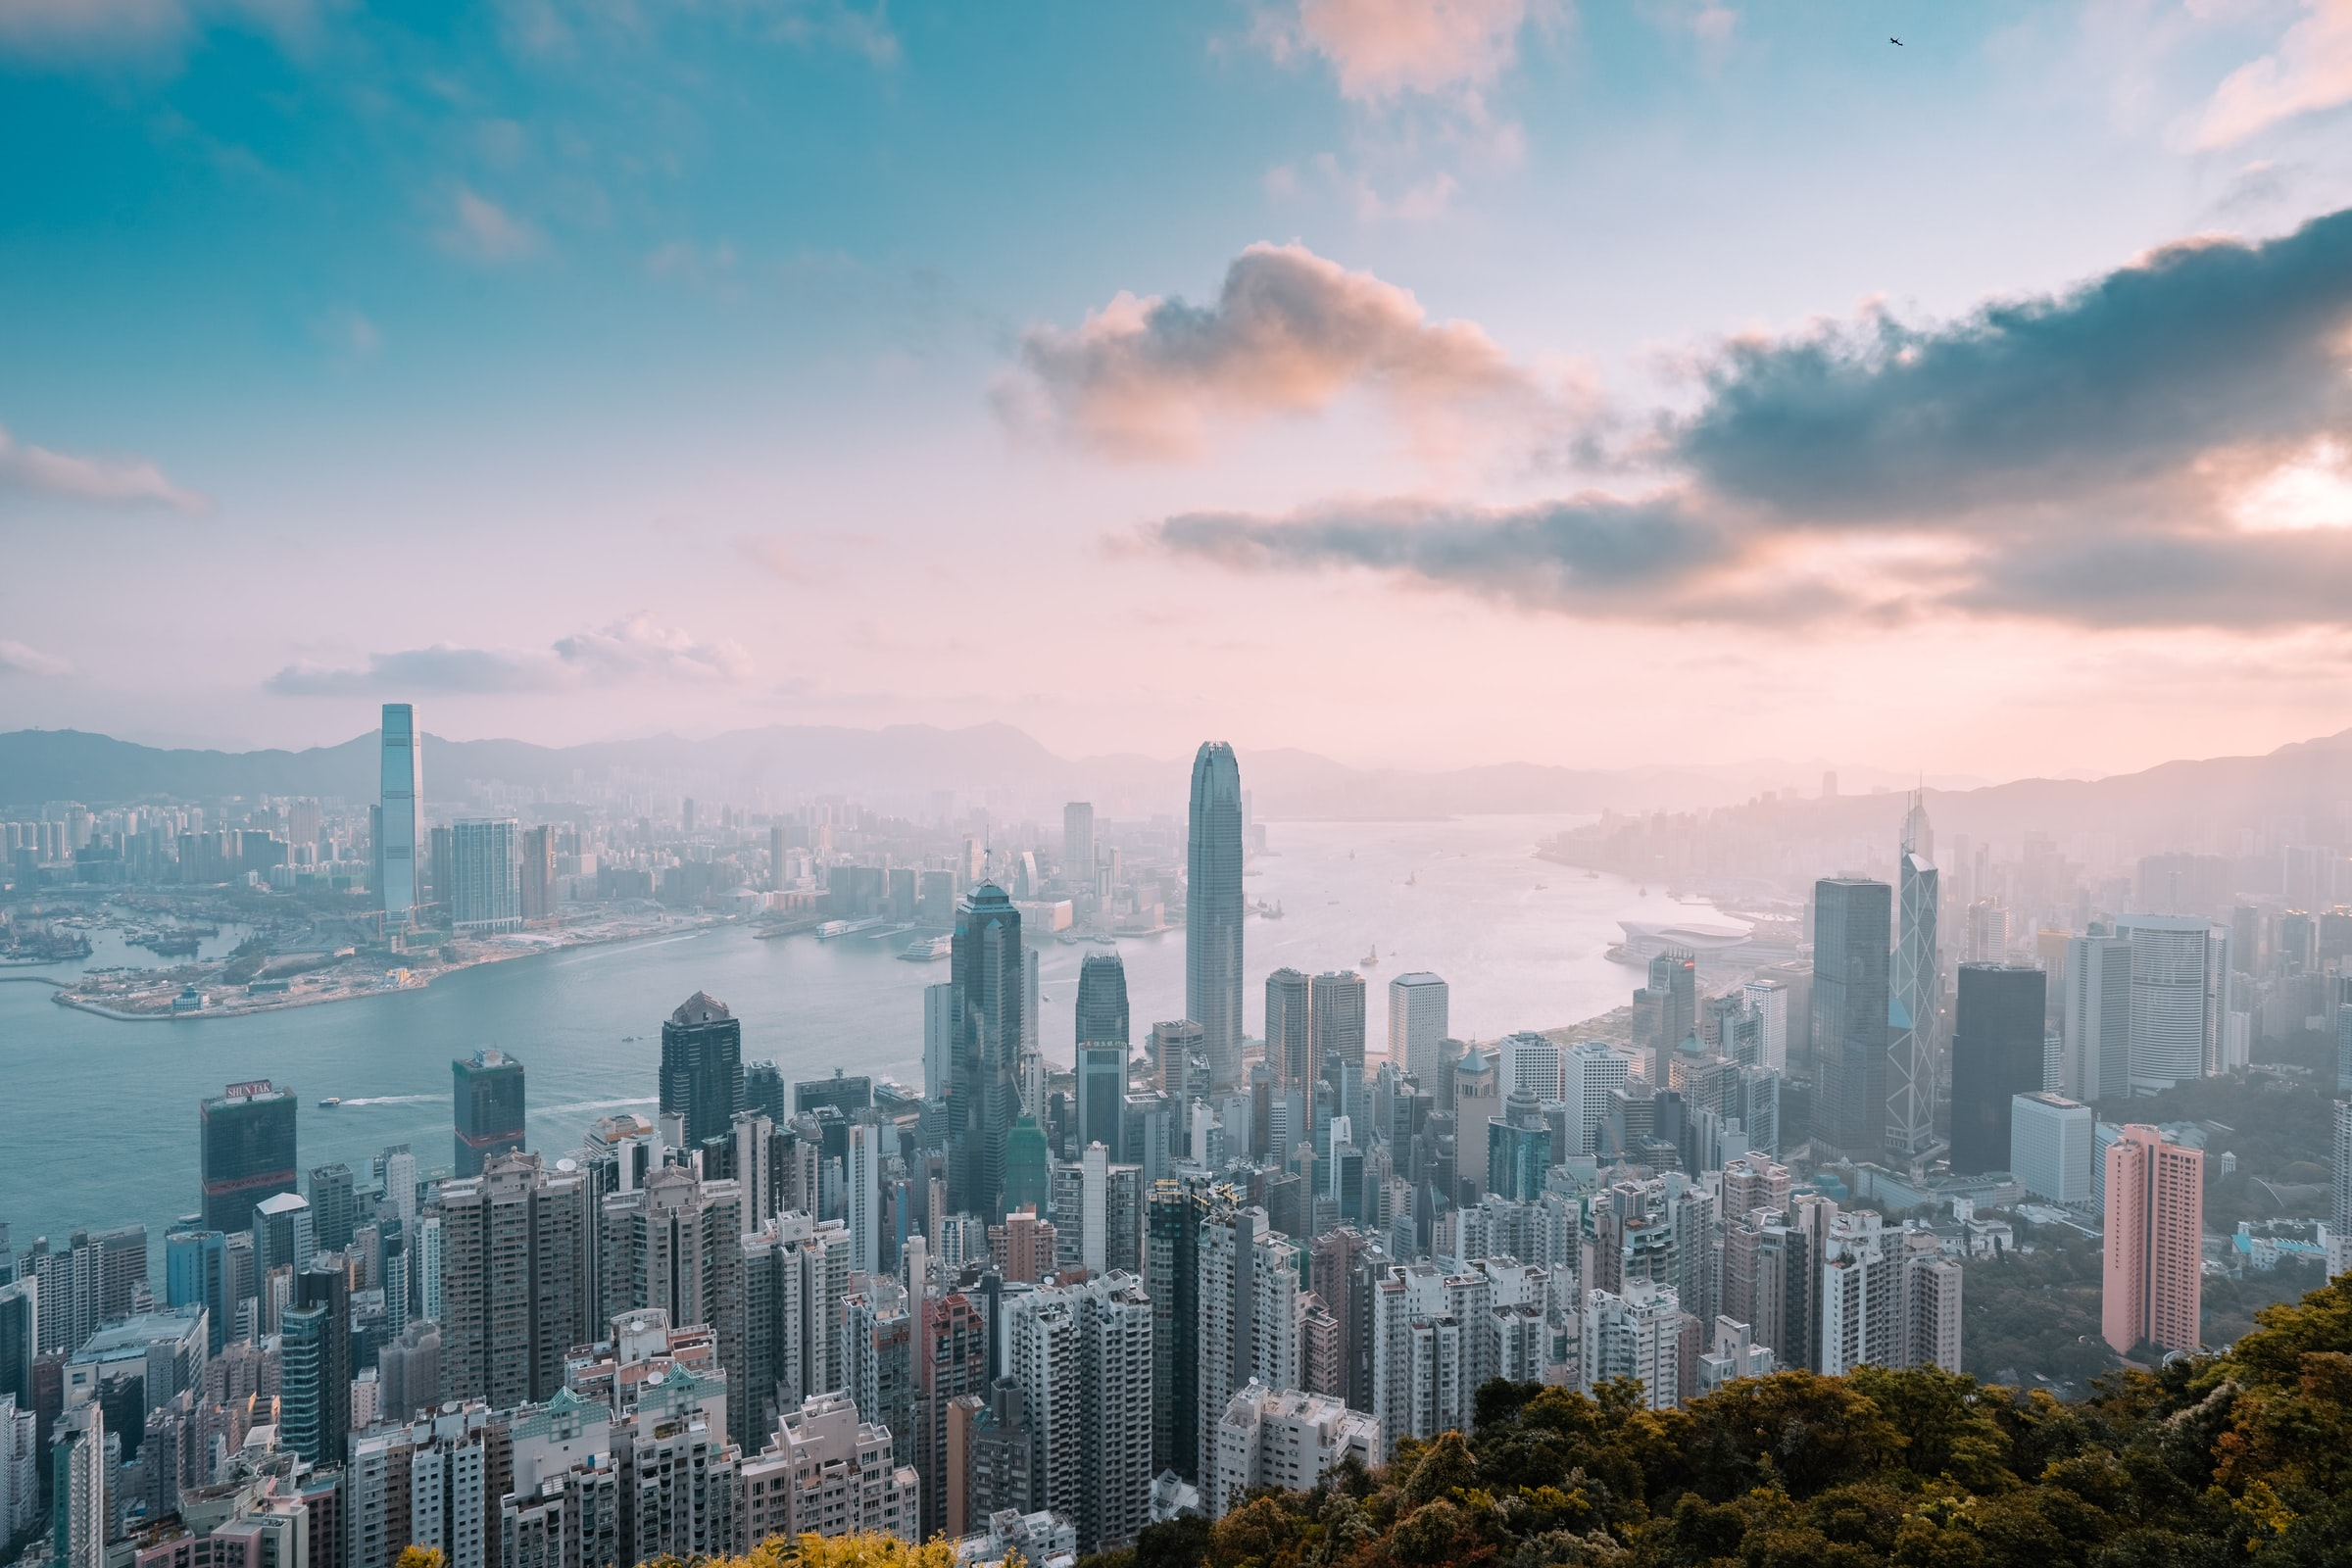 When schools in Hong Kong closed for COVID-19, Stanford educators stepped up to help | Stanford Graduate School of Education